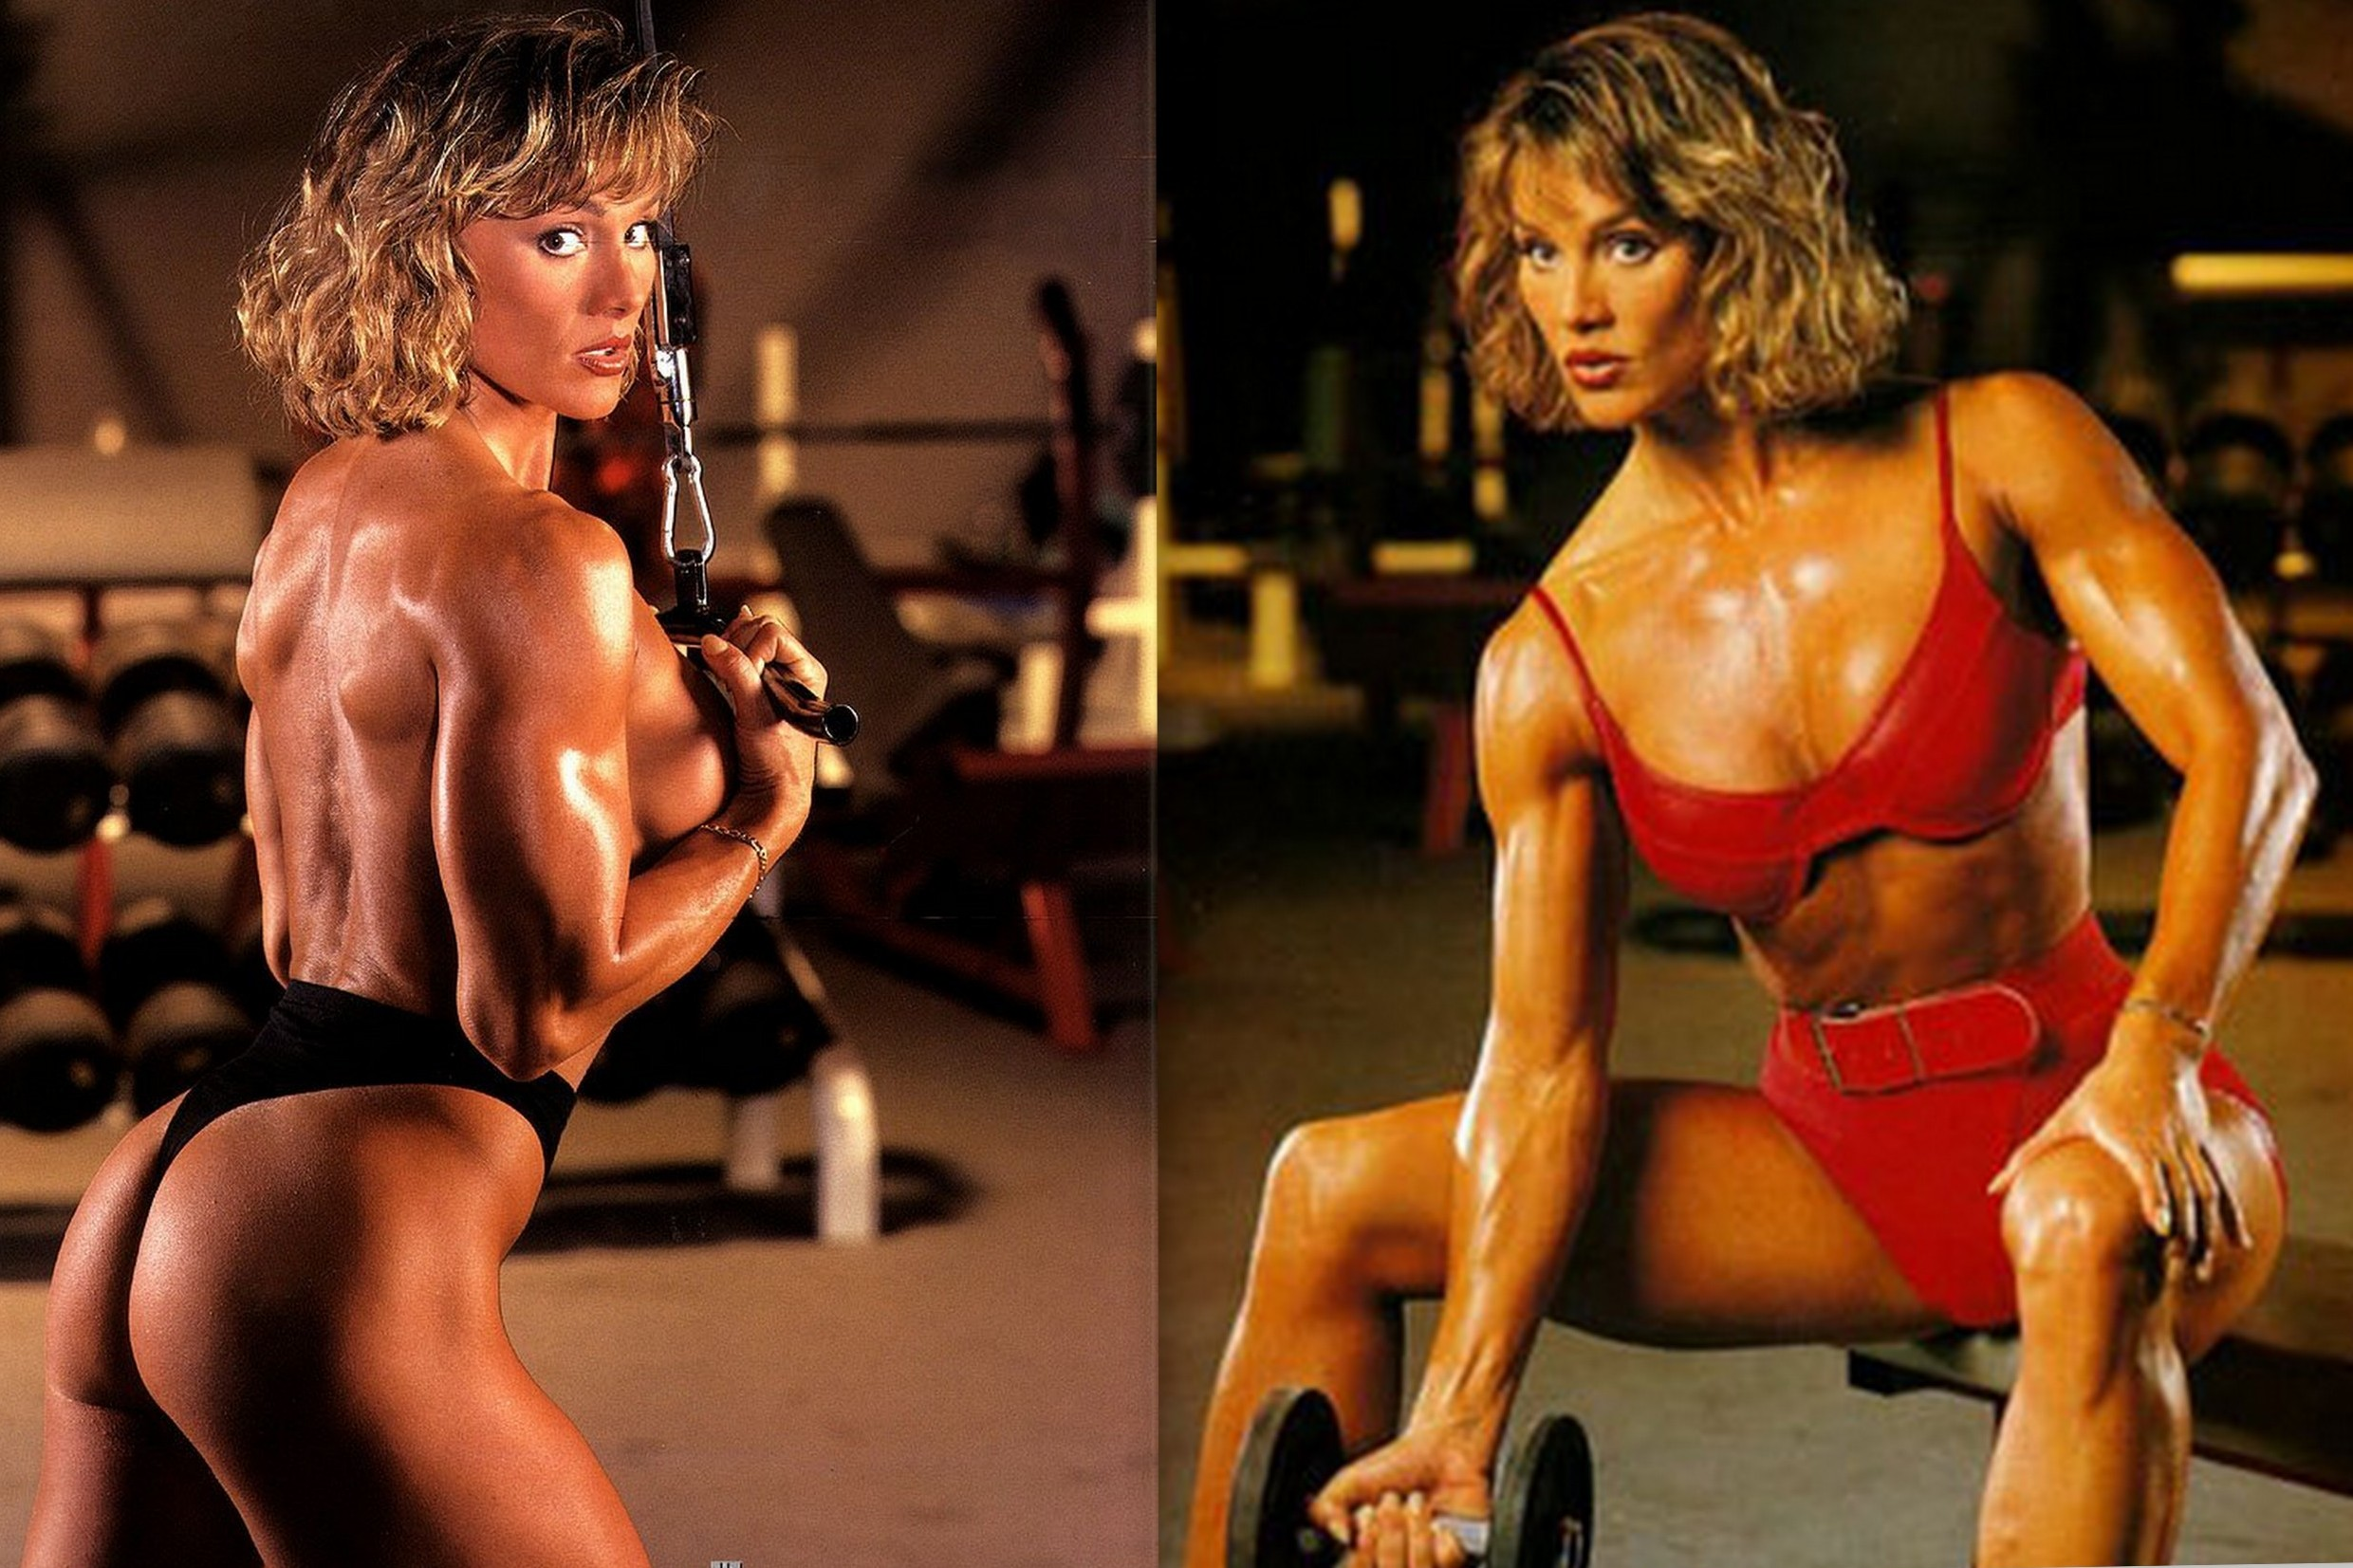 anabolic steroids before and after pics